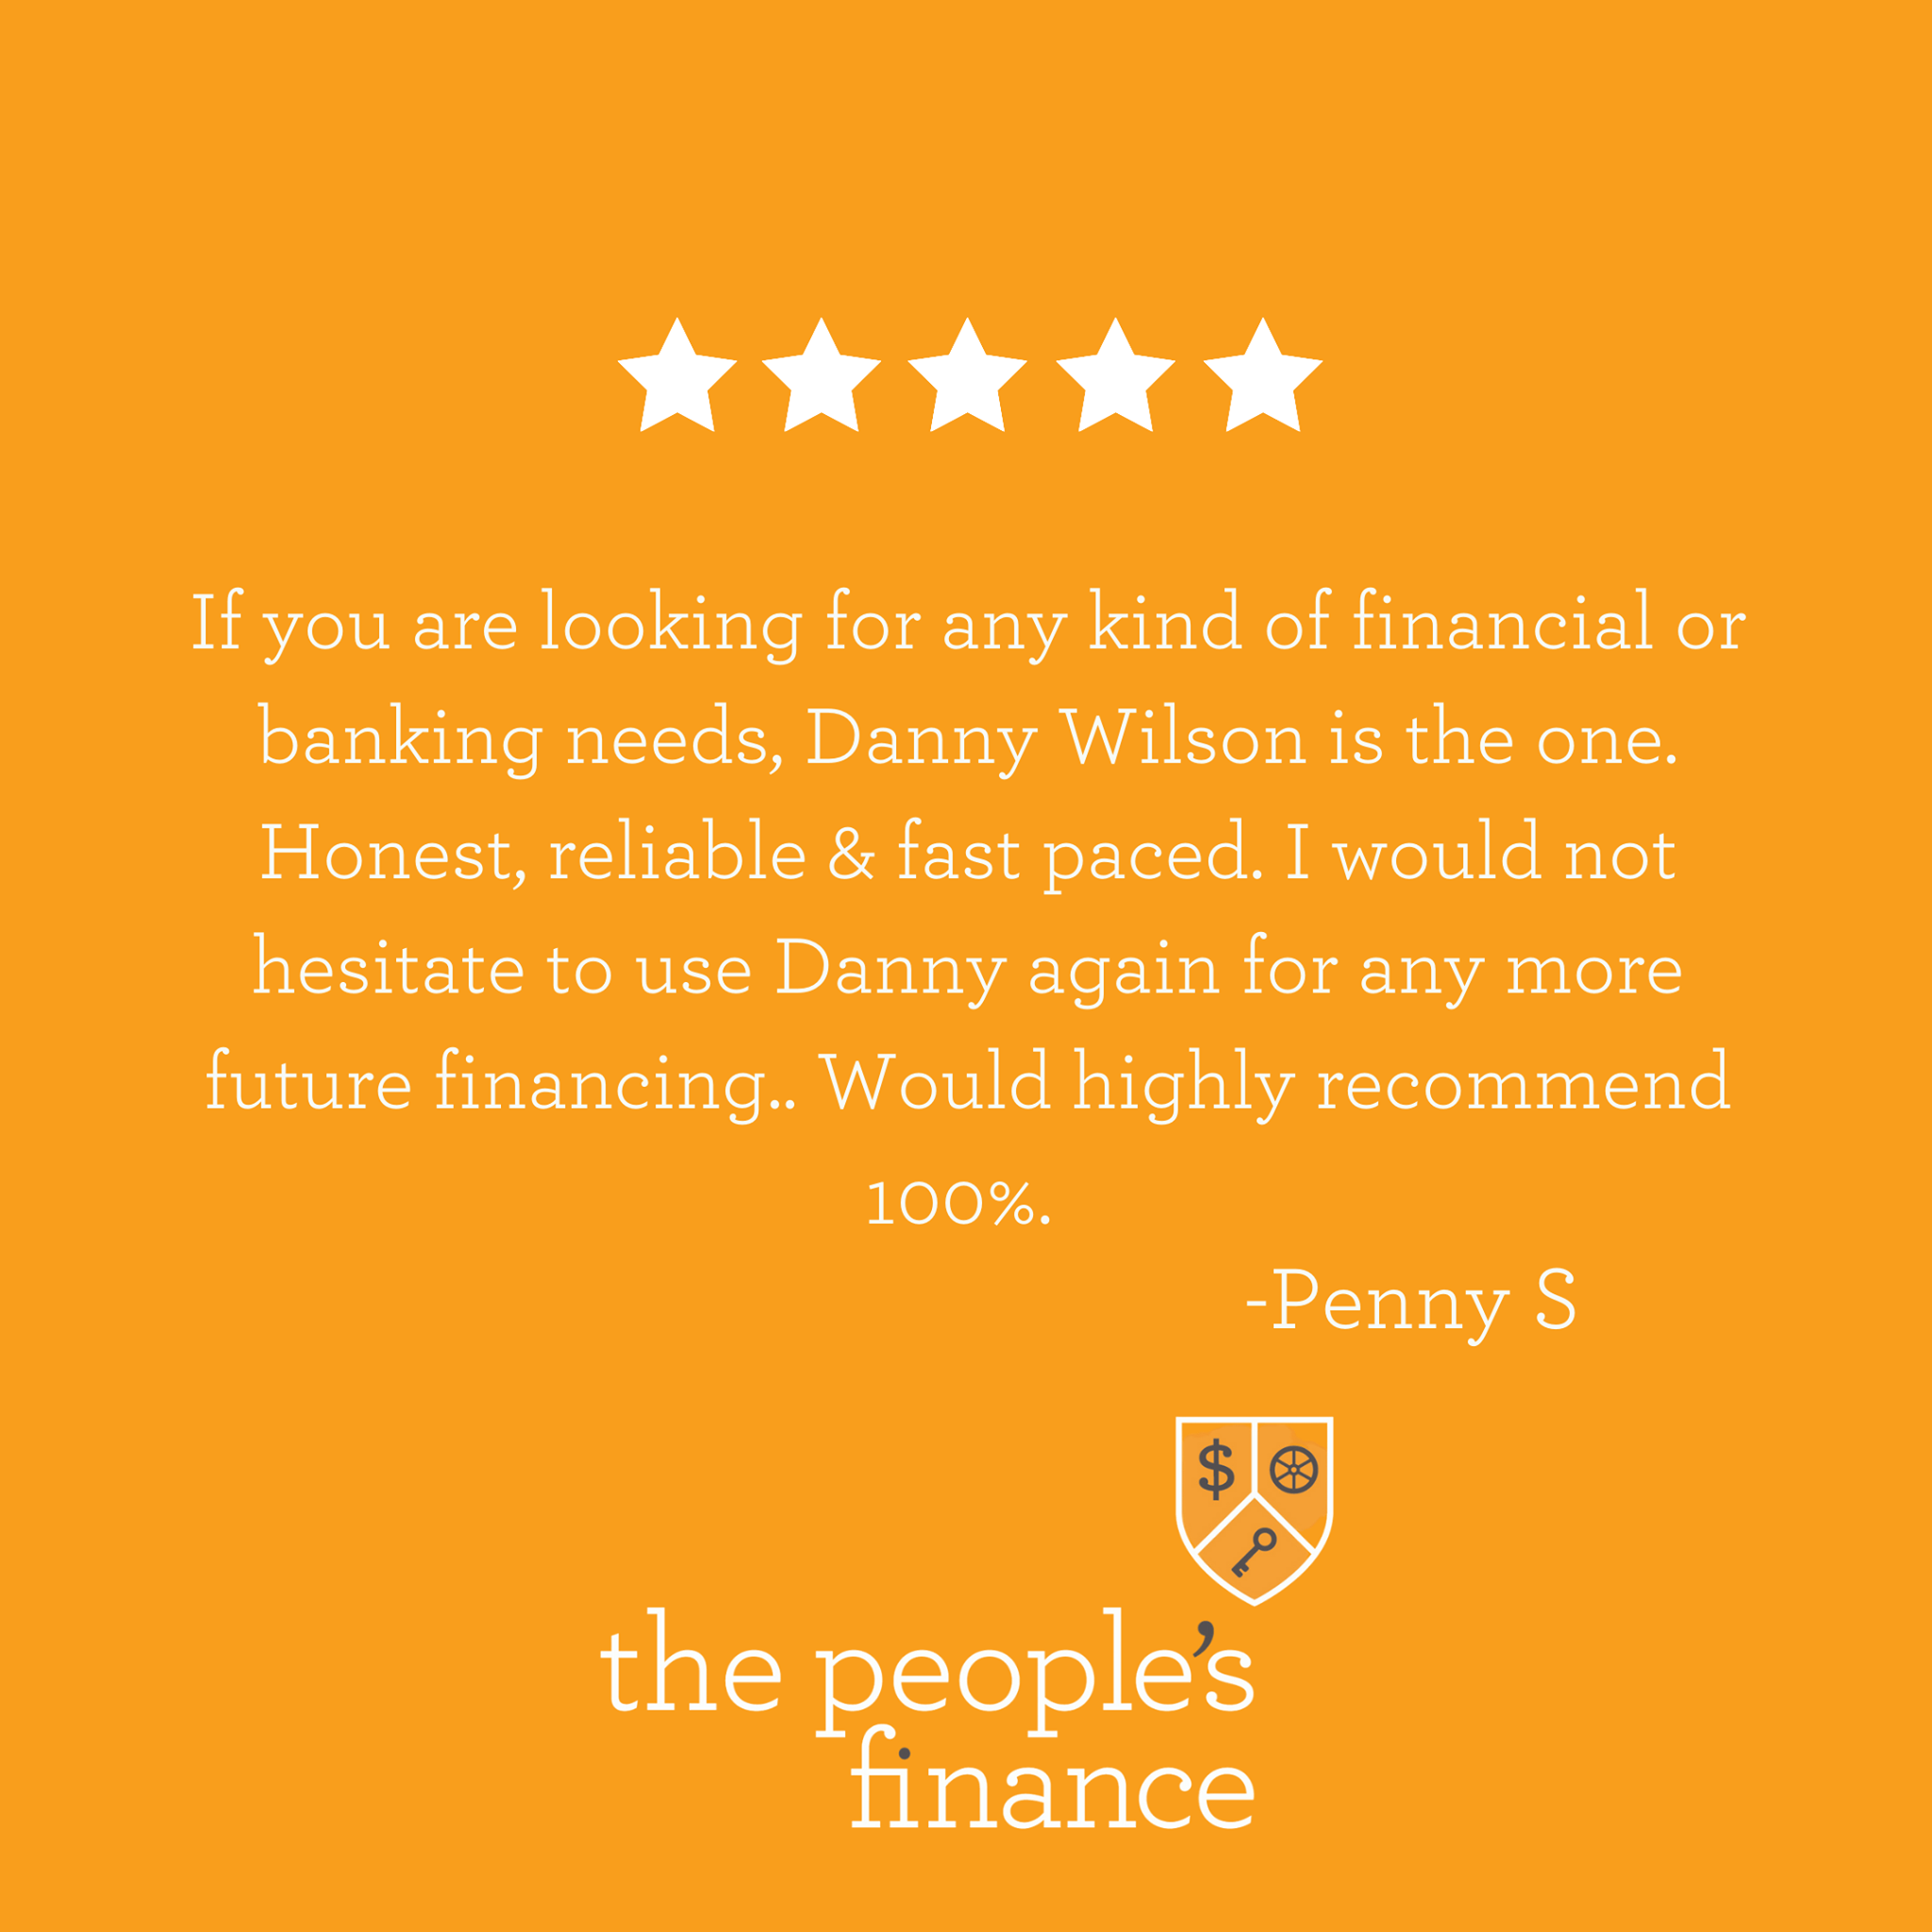 the peoples finance testimonial